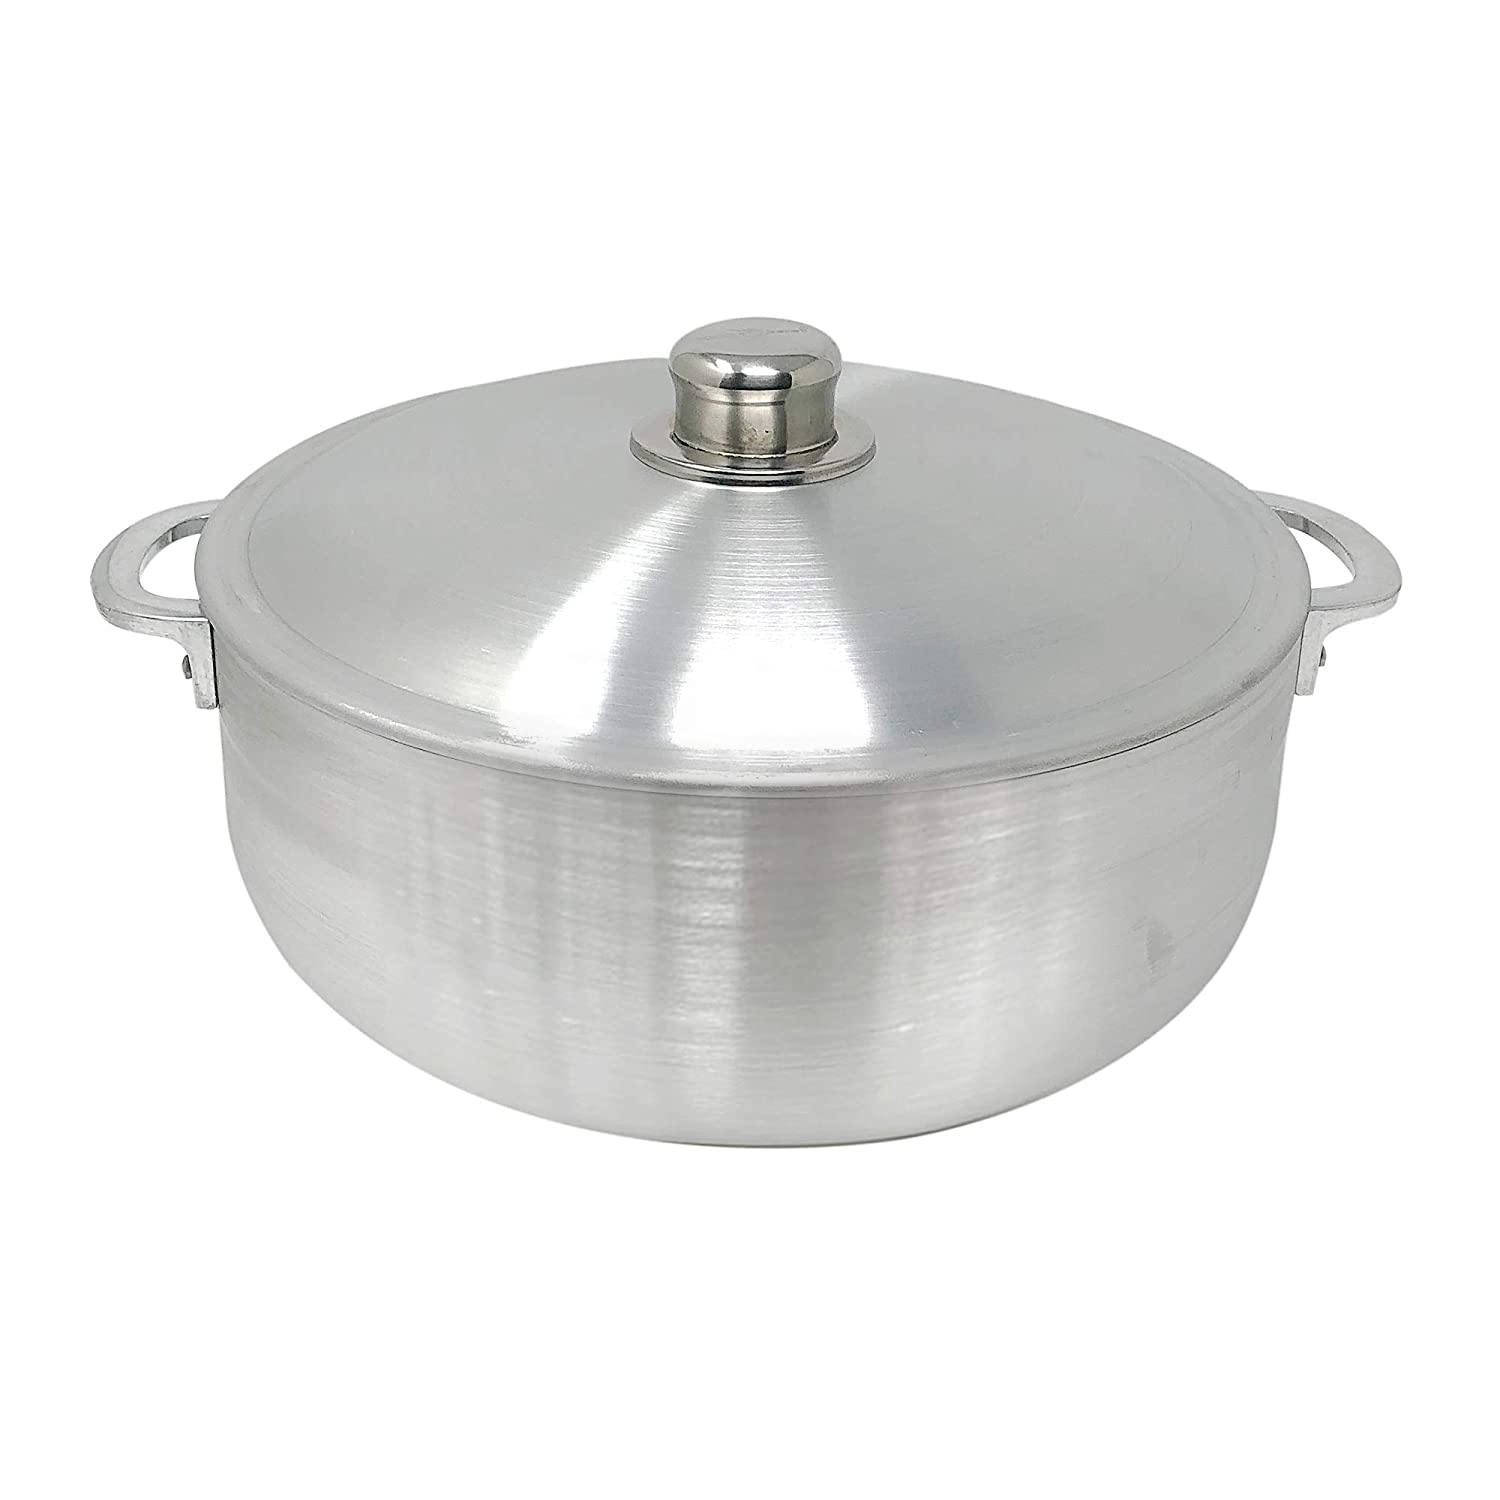 KITCHEN SENSE TRADITIONAL COLUMBIAN CAST ALUMINUM CALDERO BY AMERICAN DREAM SILVER STOCK POT WITH ALUMINUM LID -HEAVY GAUGE (6.9 Quarts)